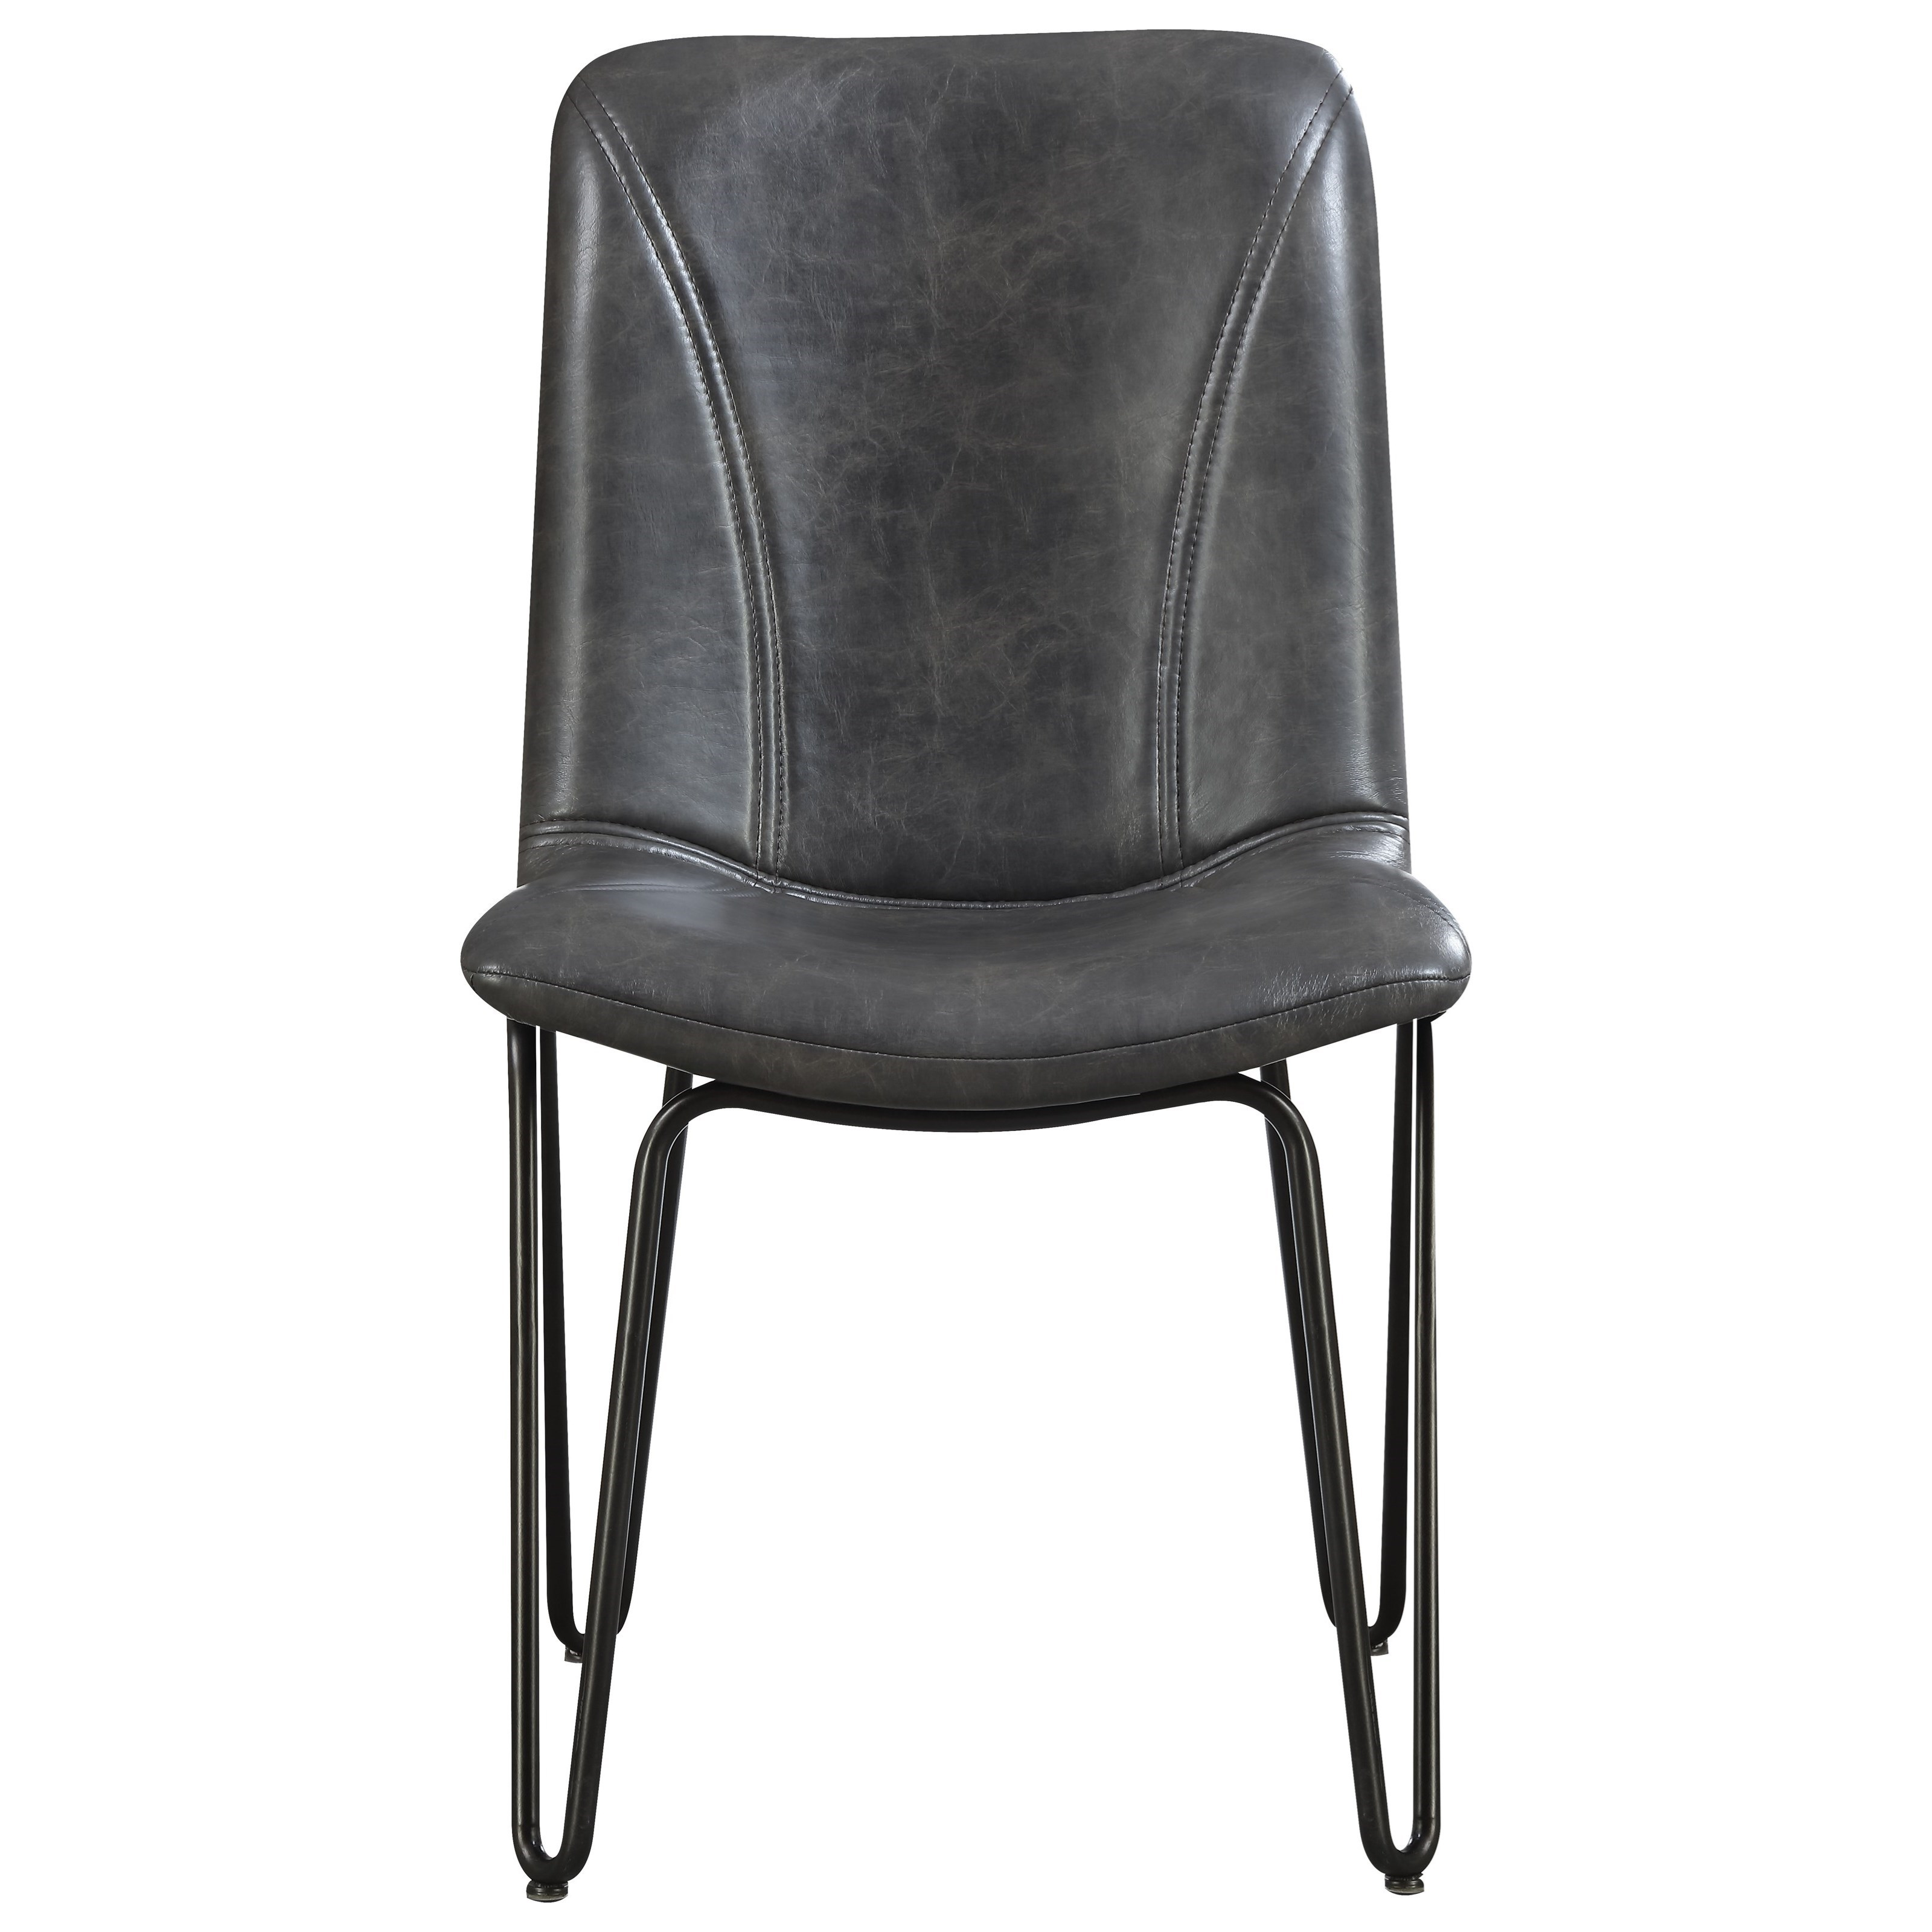 Hairpin Leg Chair Coaster Chambler 130083 Dining Chair With Leatherette Seat